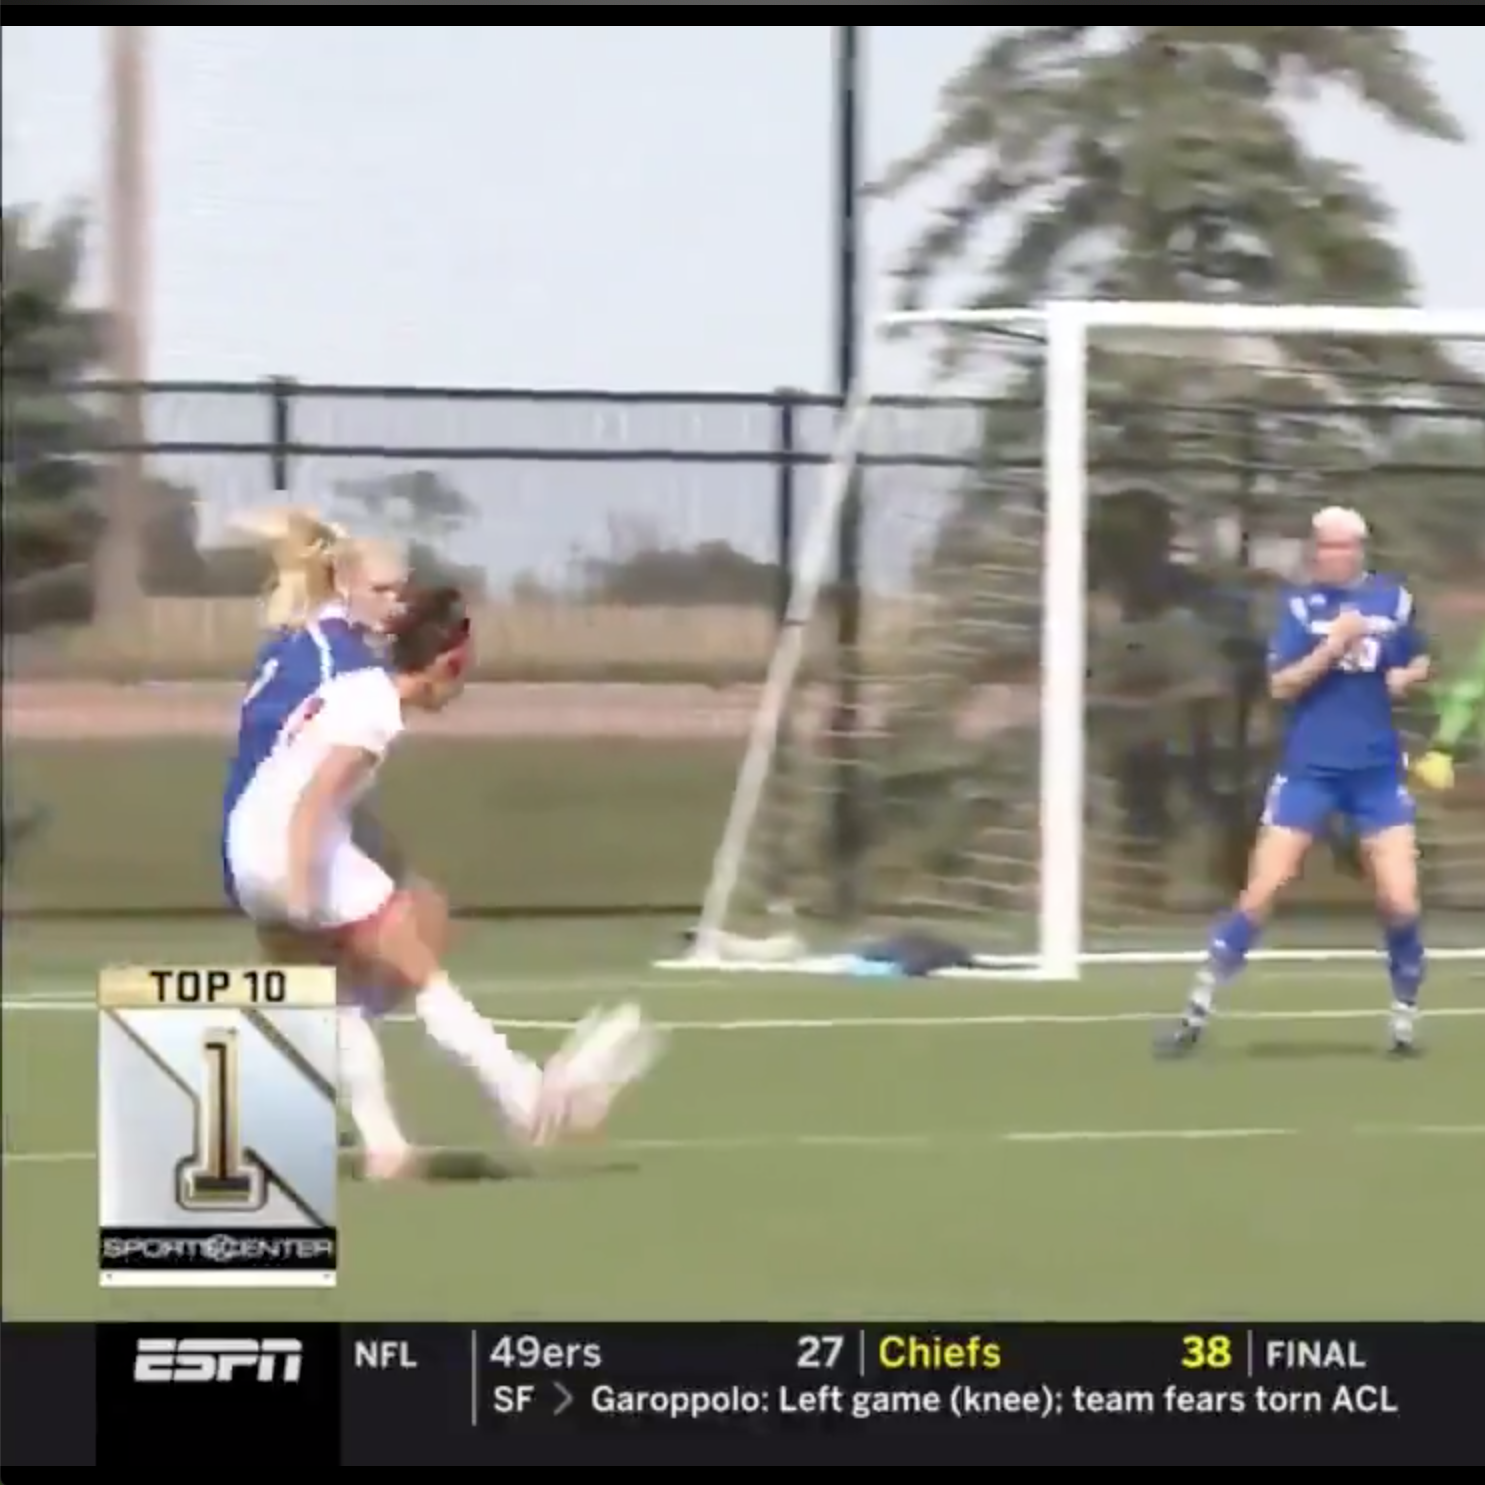 'Just like Beckham': Joana Zanin's ridiculous goal earns top play honors on SportsCenter